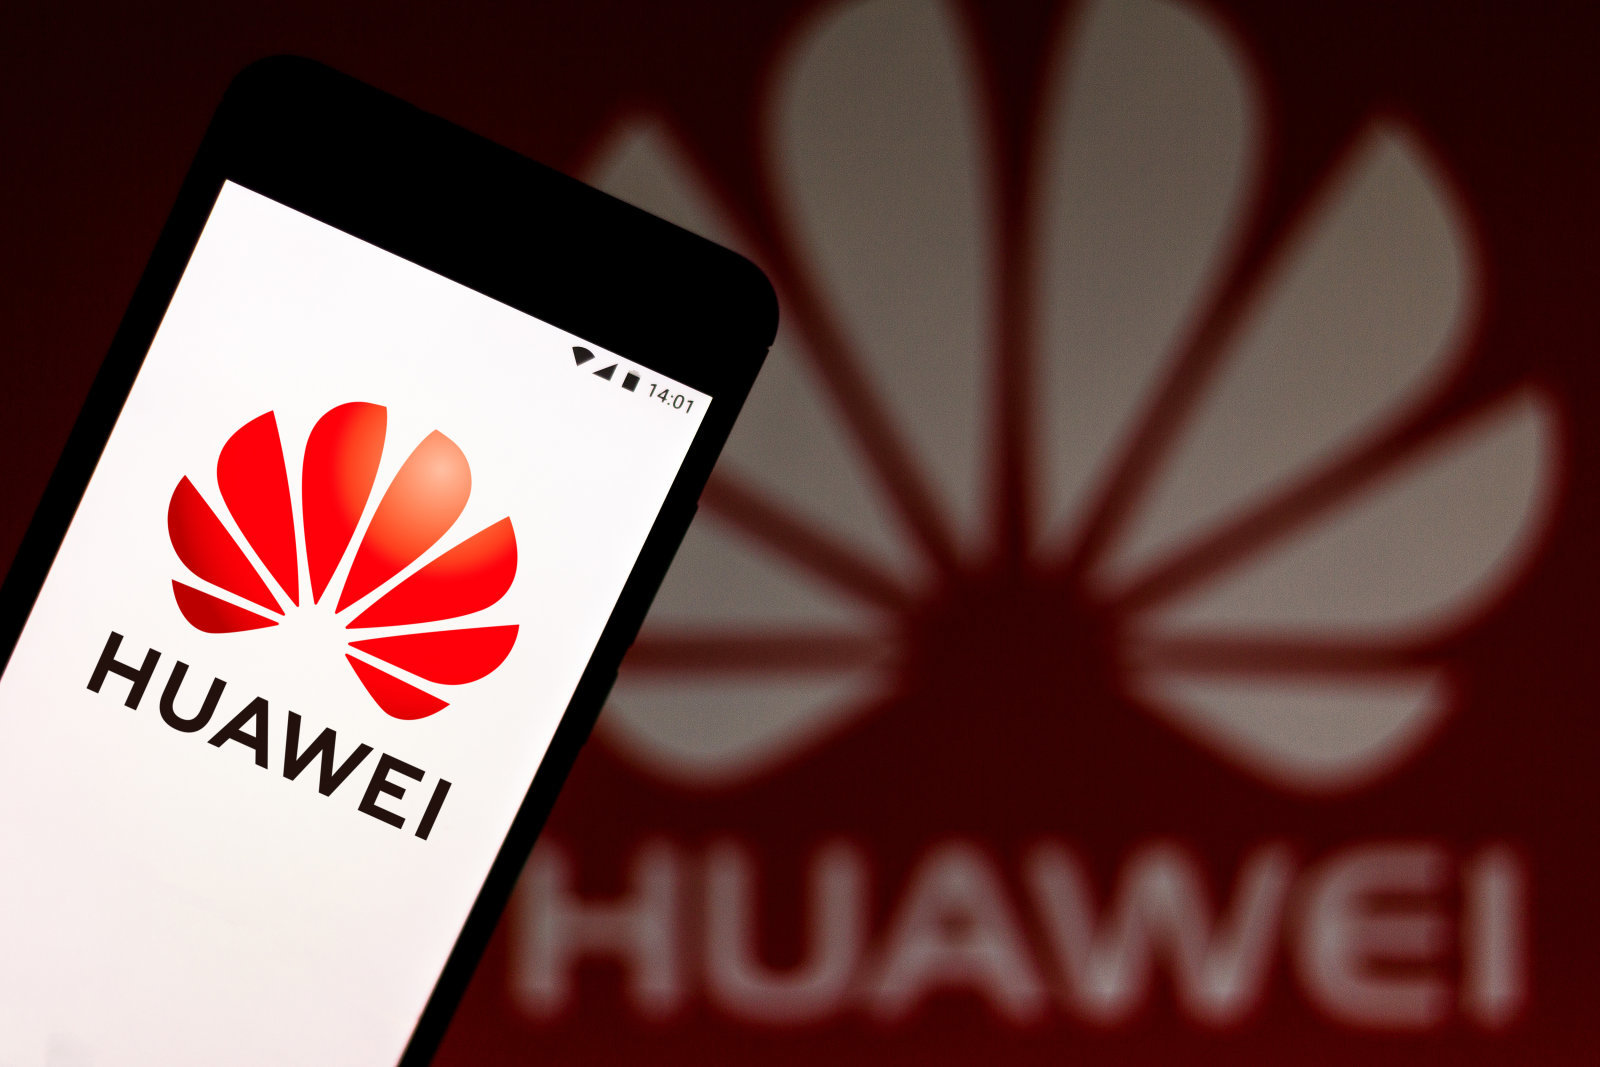 Acquired   Huawei